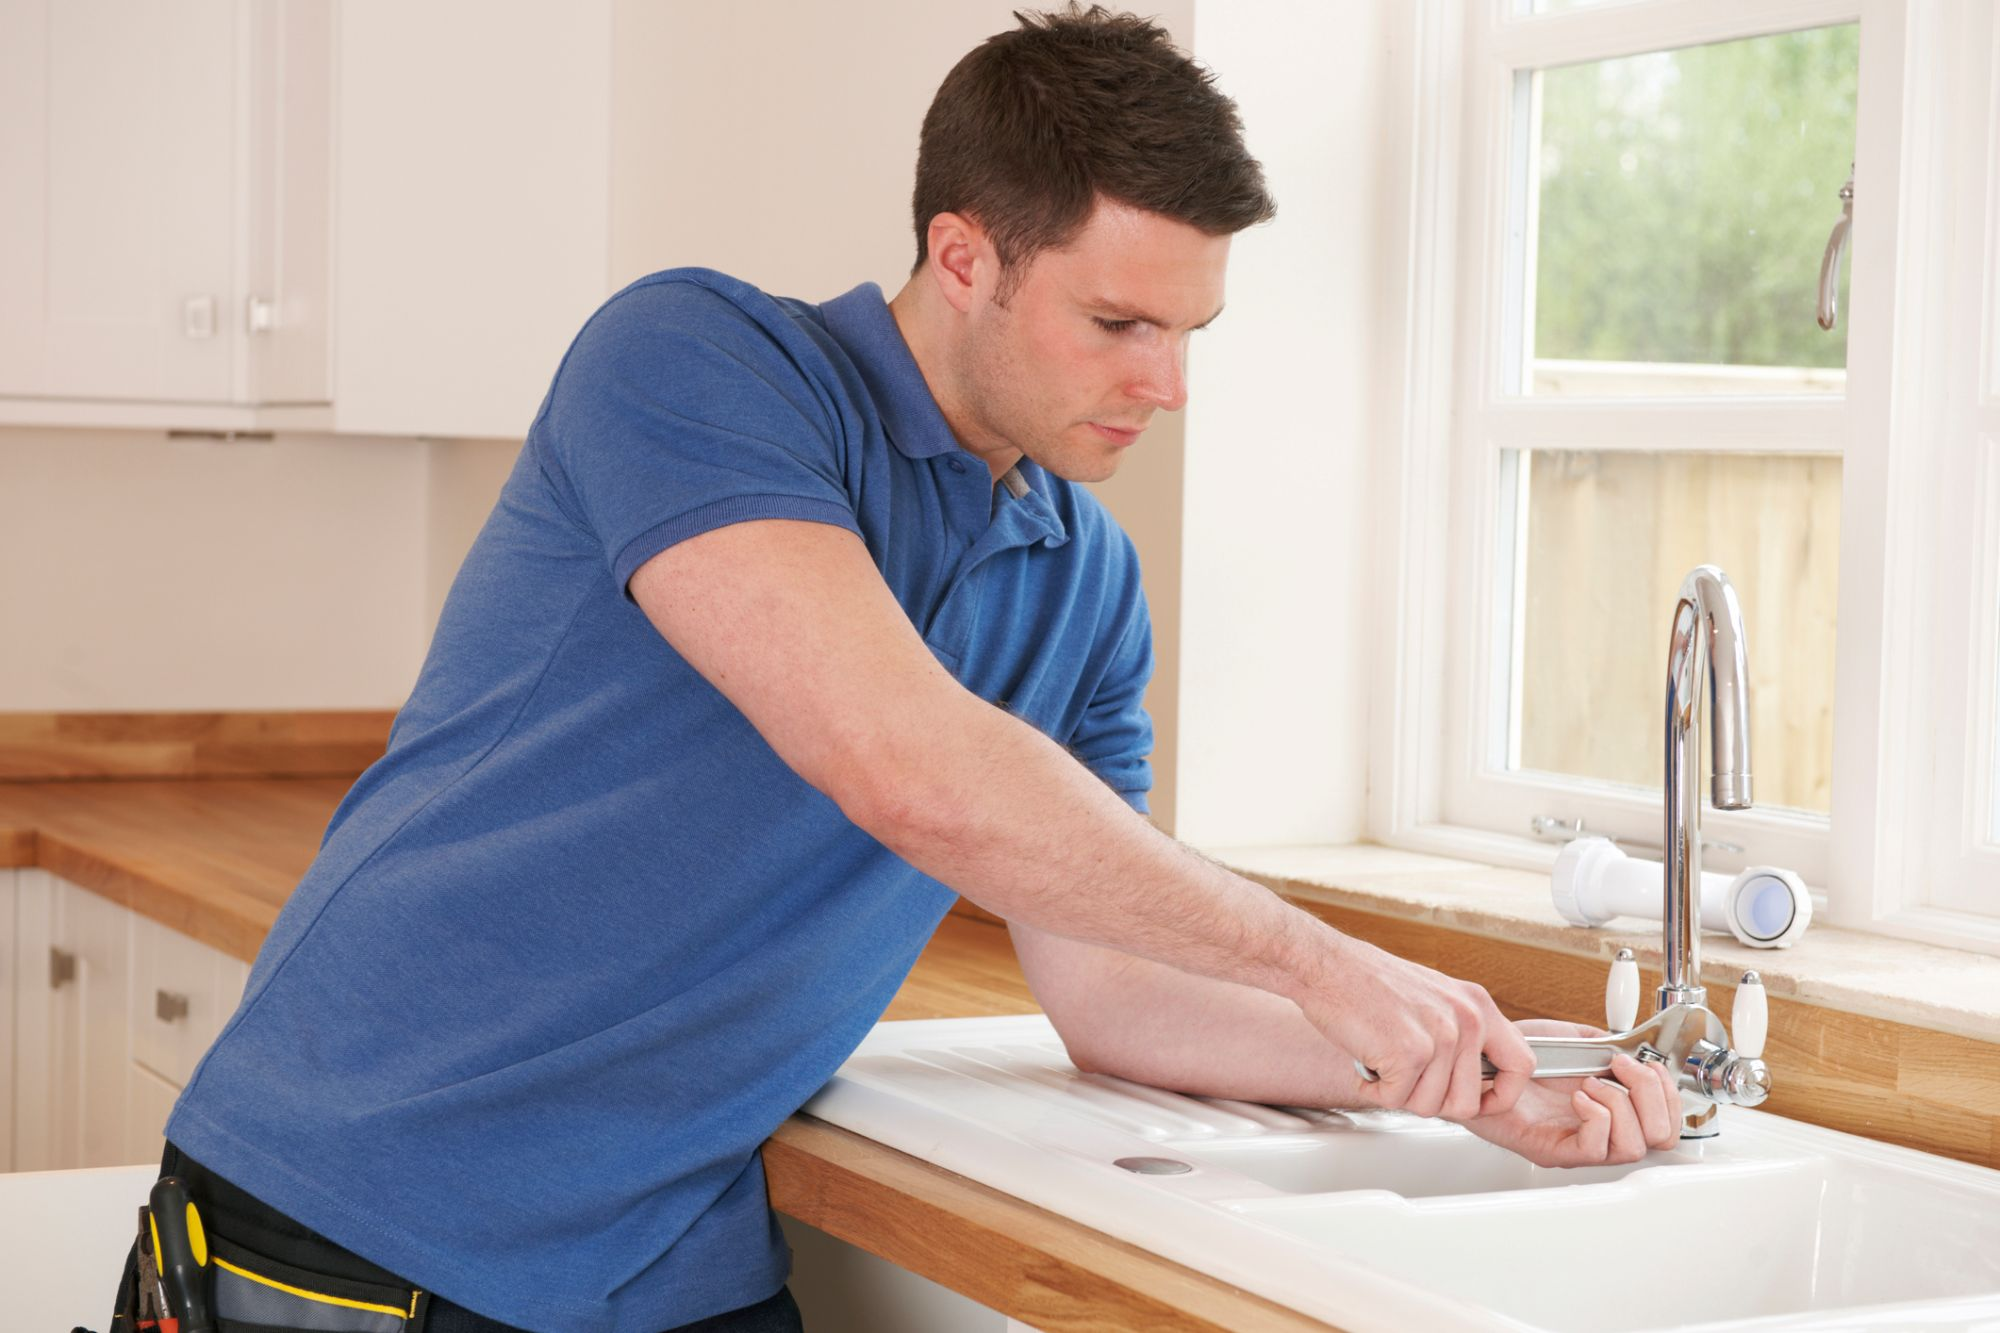 Man fixing the kitchen faucet